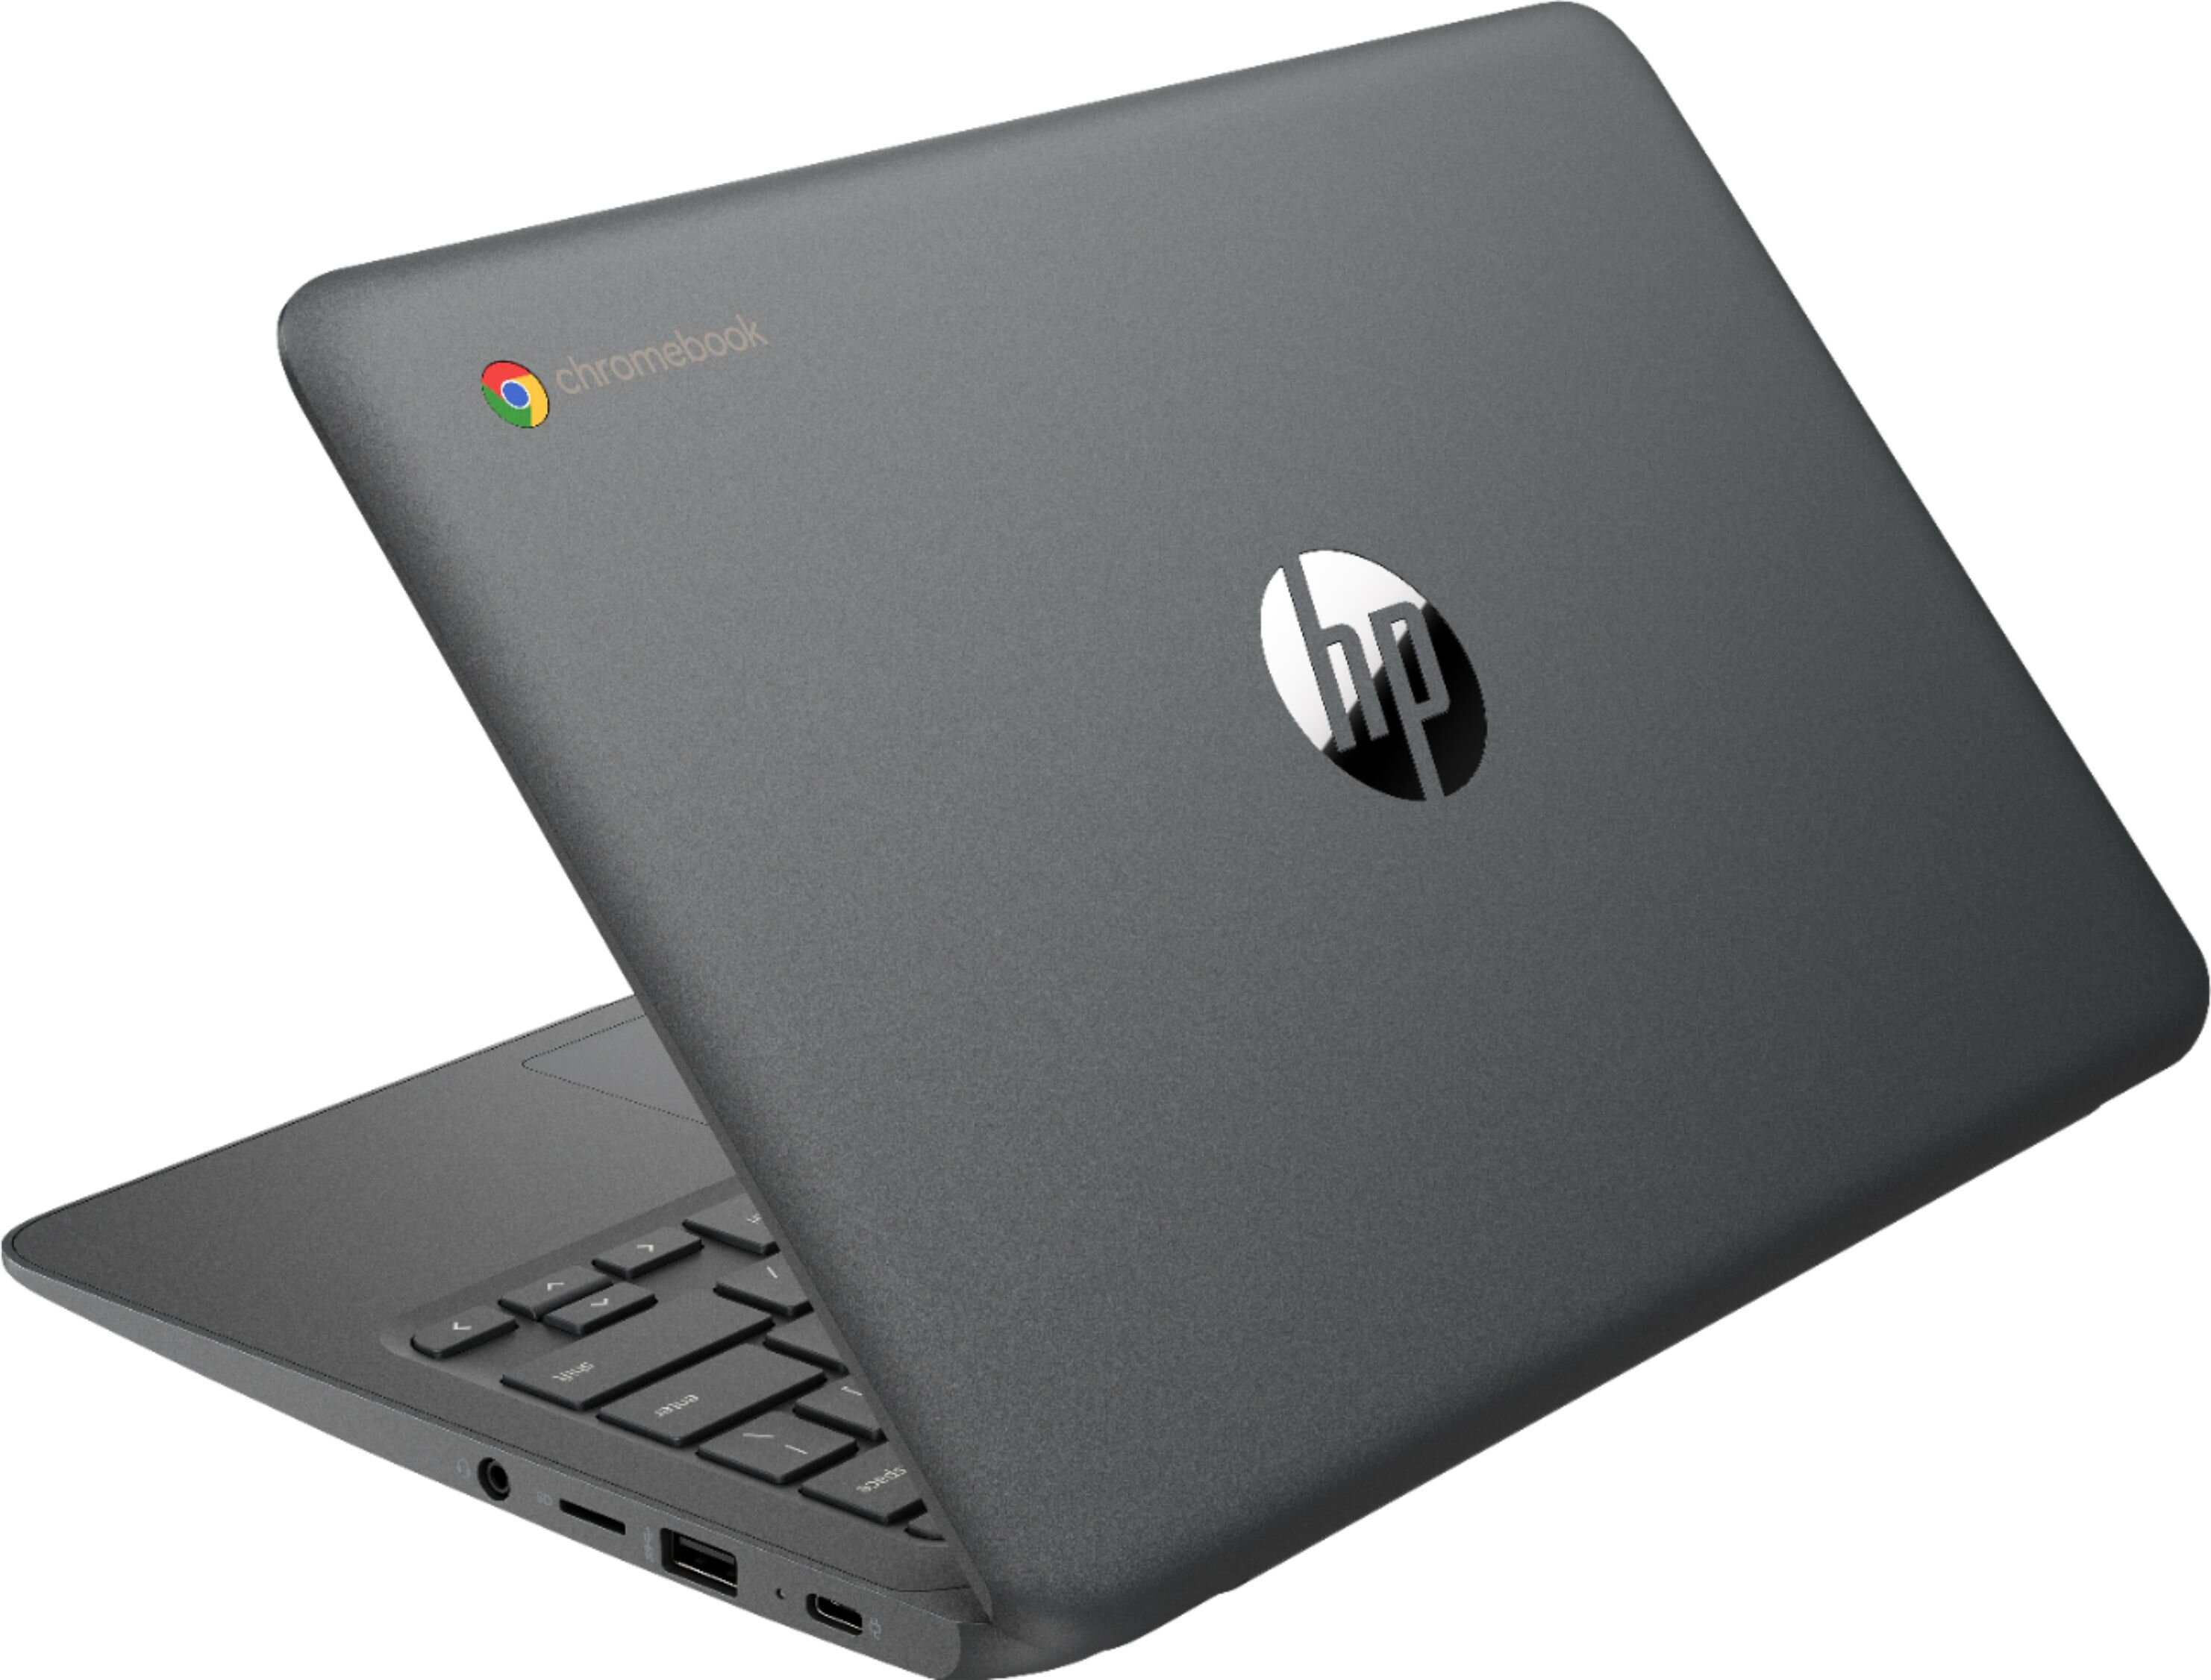 "HP - 11.6"" Chromebook - Intel Celeron - 4GB Memory - 32GB eMMC Flash Memory - Ash Gray - 4"